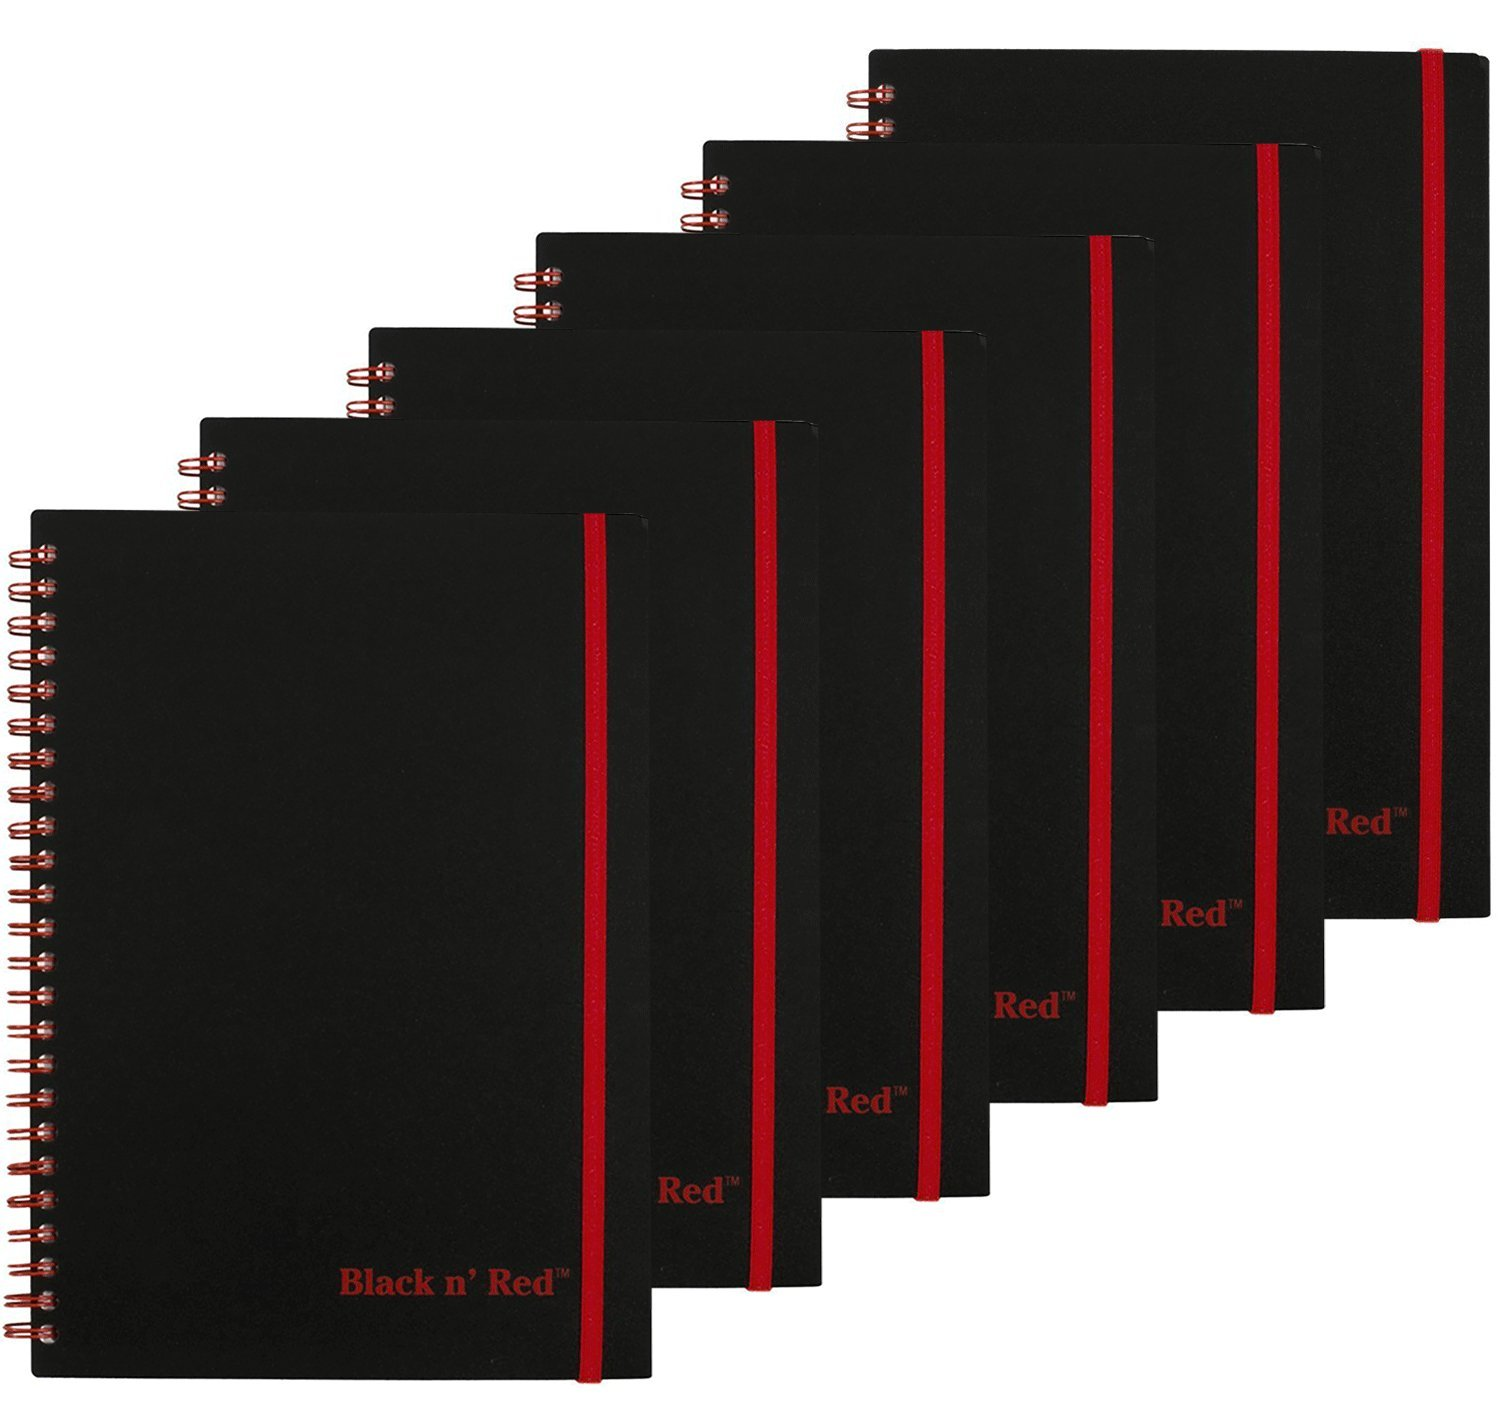 Black n' Red Twin Wire Poly Cover Notebook, 8-1/4 x 5-7/8, Black/Red